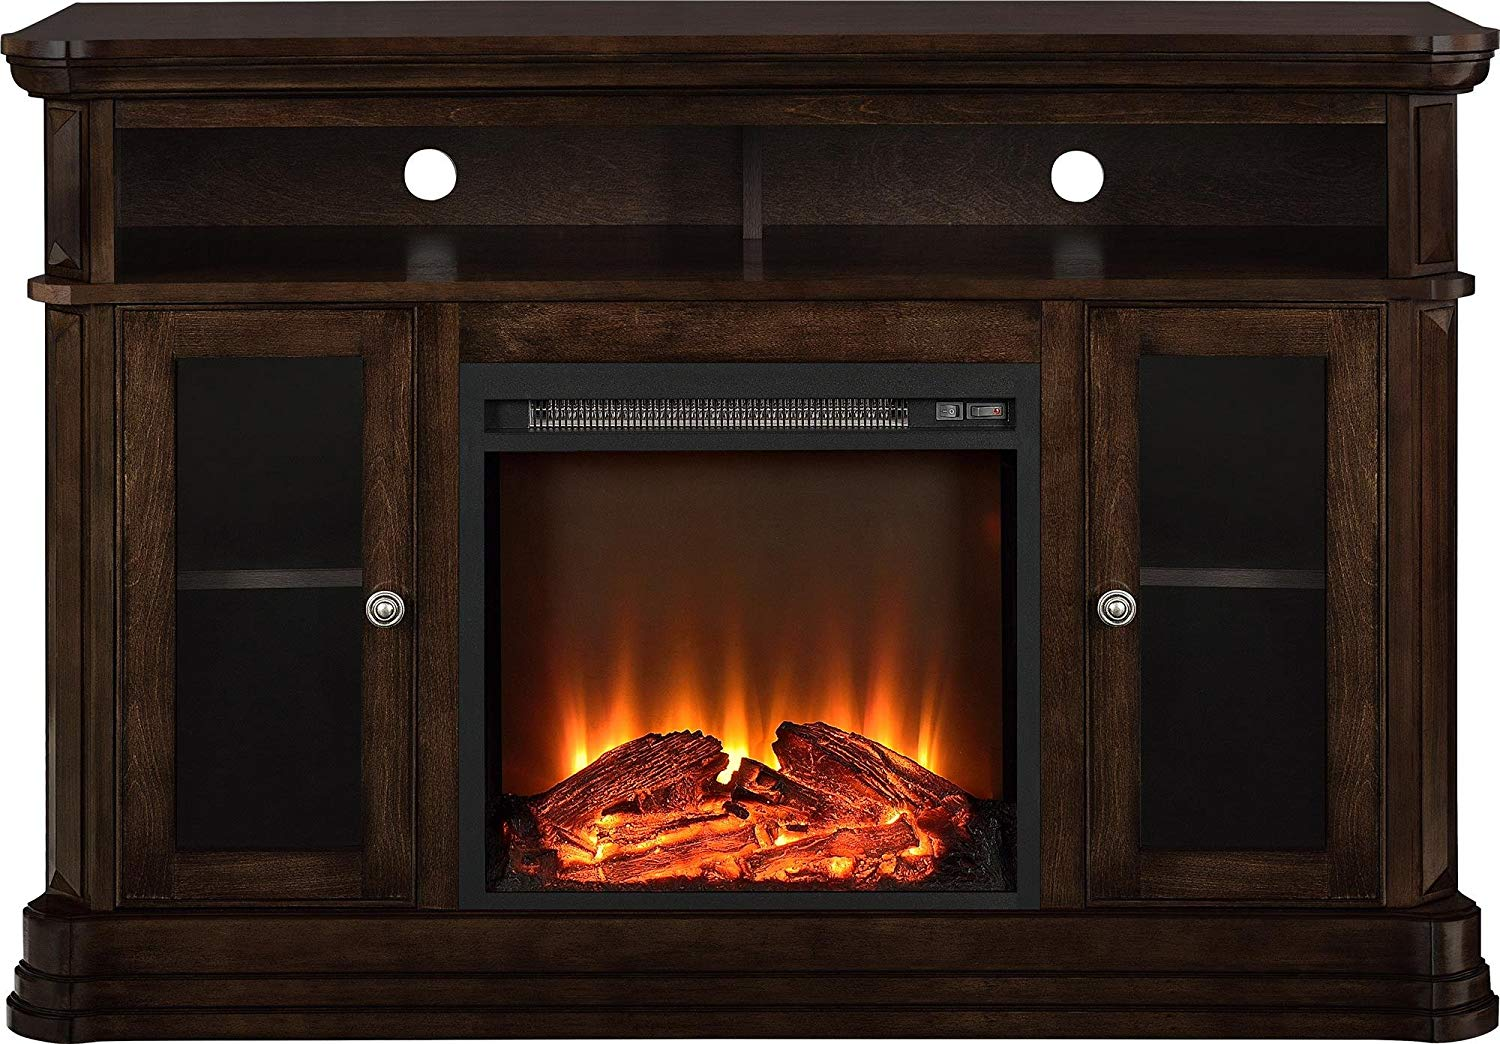 Altra Furniture Chicago Fireplace TV Stand, 50 inches_1